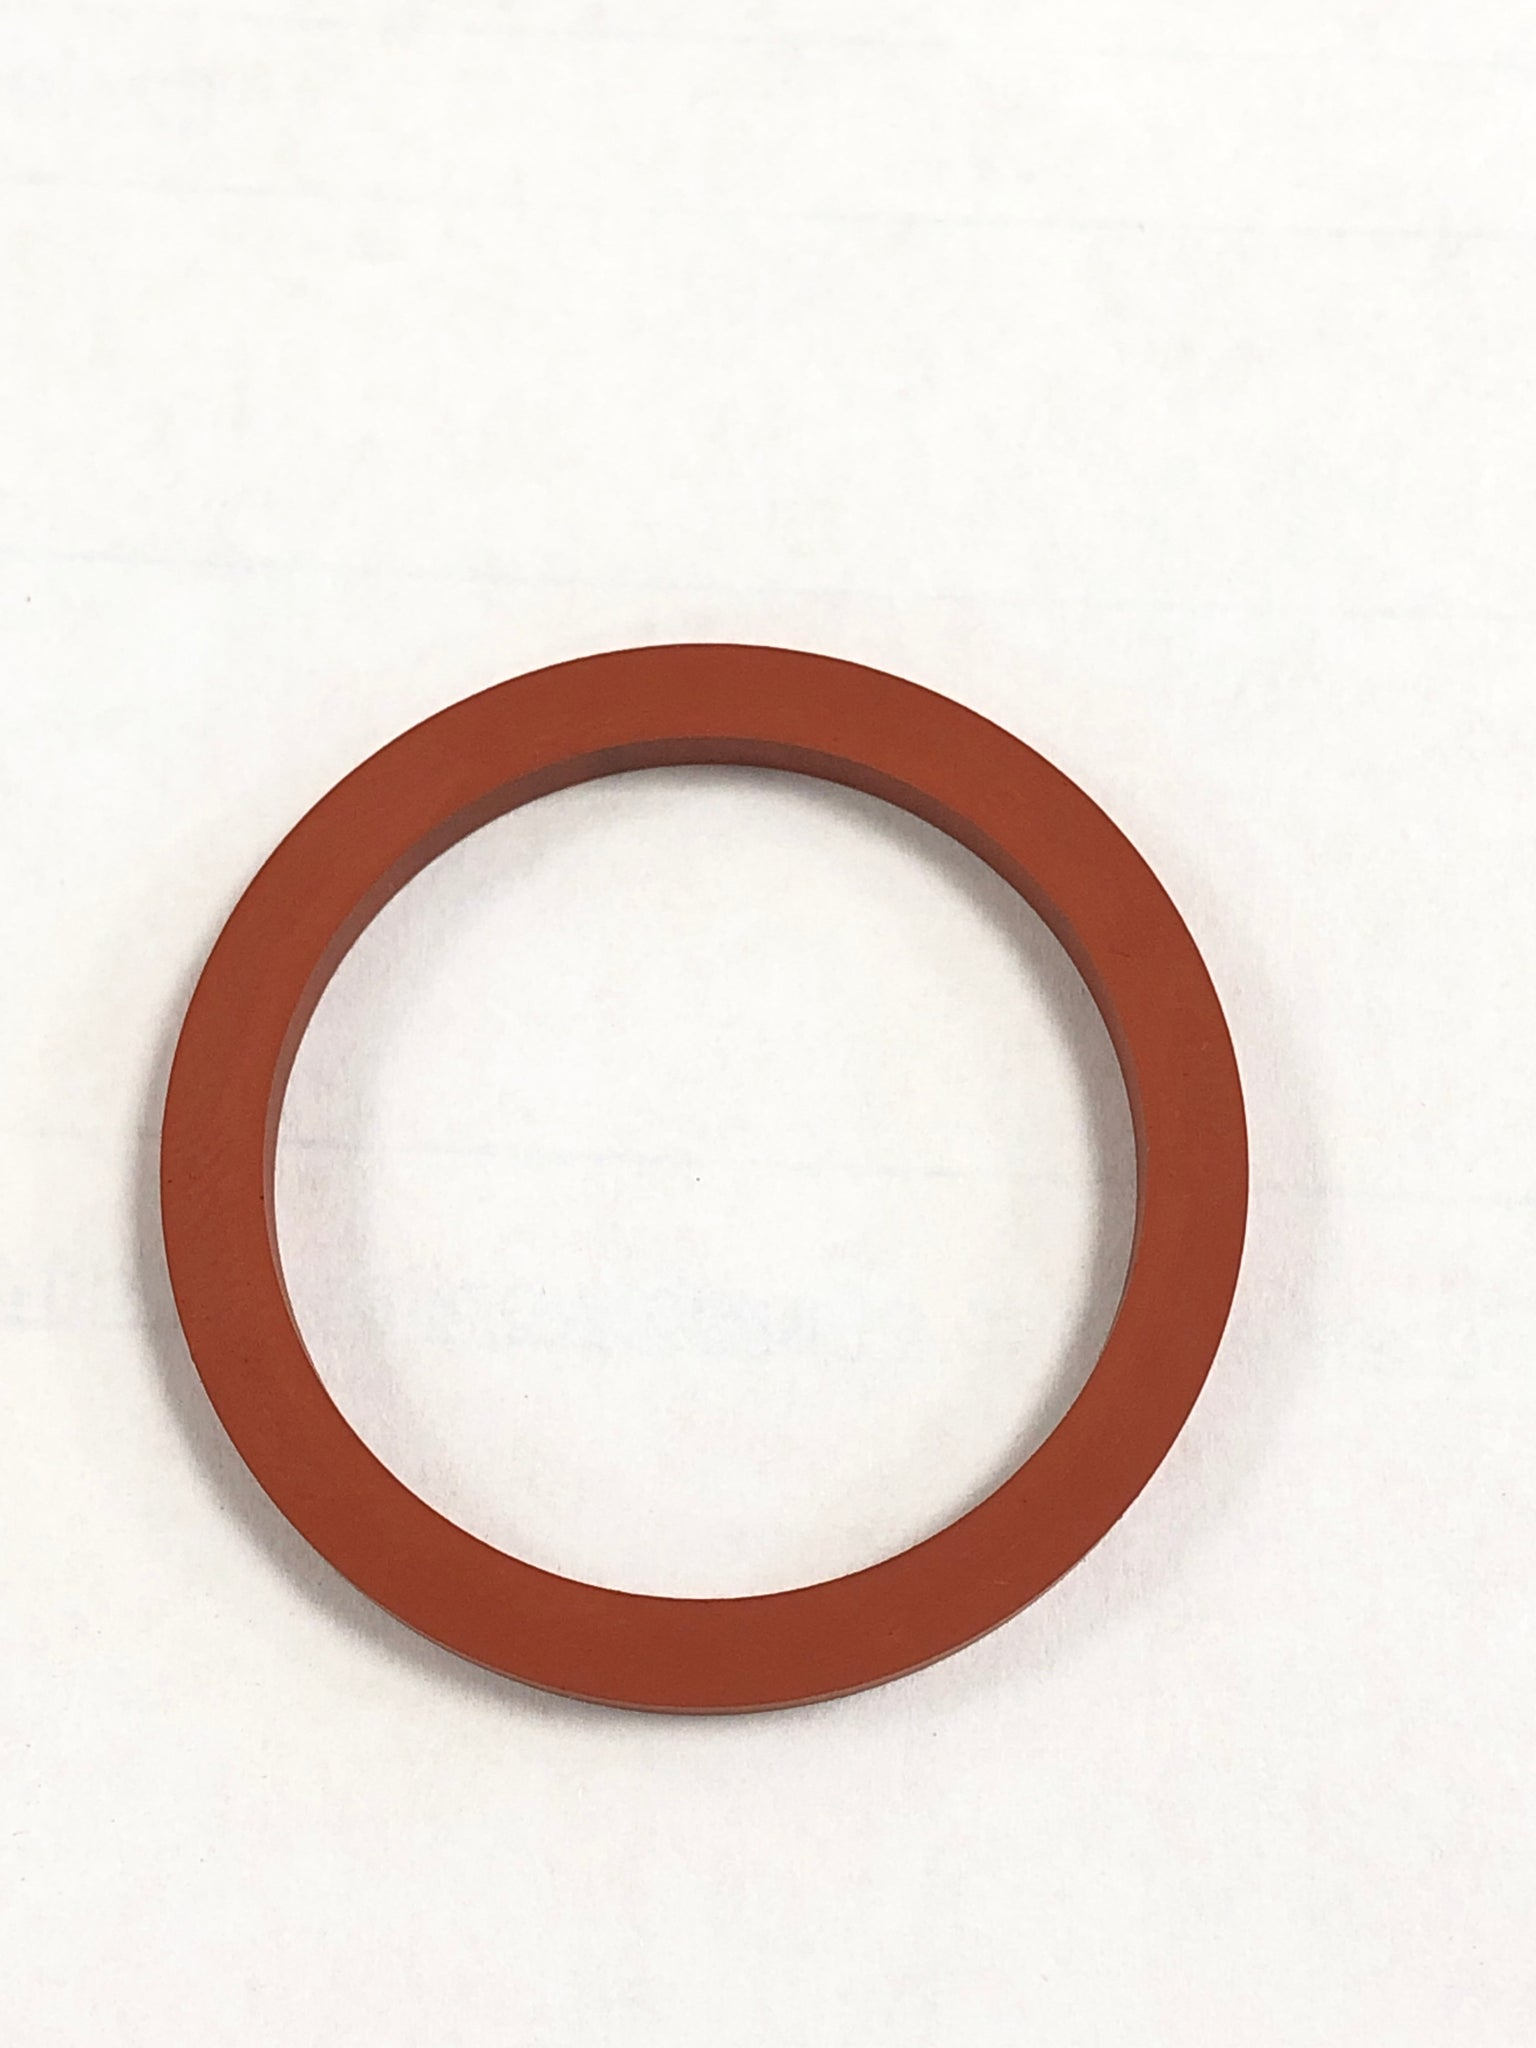 Porsche 924 944 in tank pump / filter sealing ring 928 201 187 02 ((lb162)) - Woolies Workshop - Porsche 924 944 spares